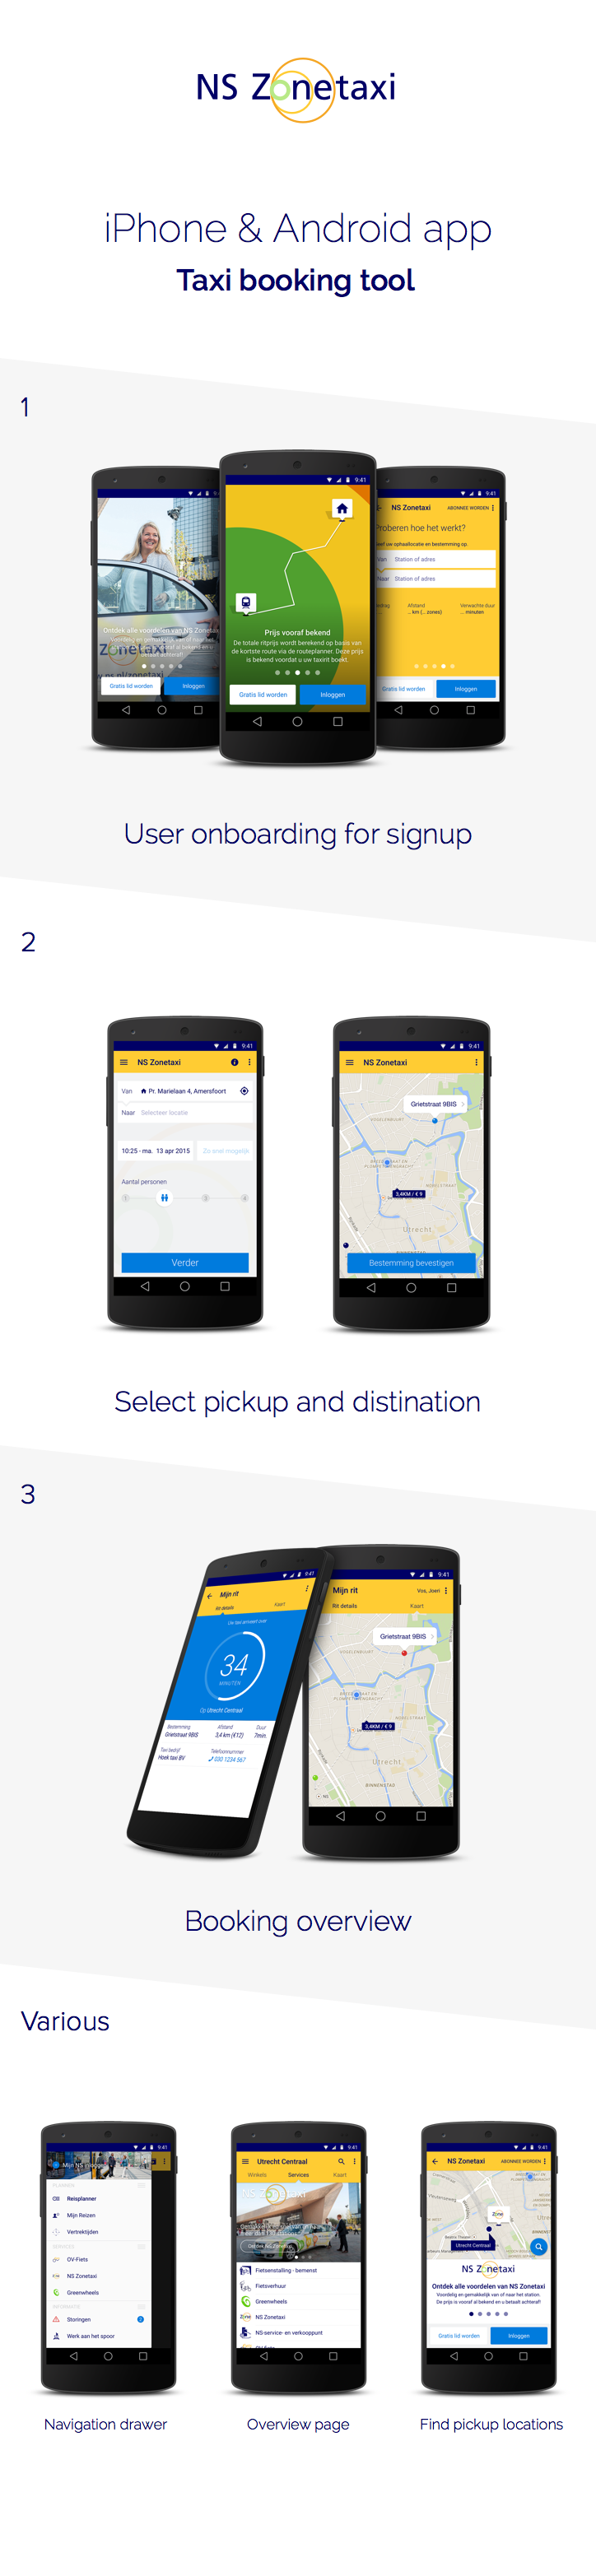 NS Zonetaxi iPhone & Android taxi booking on Behance